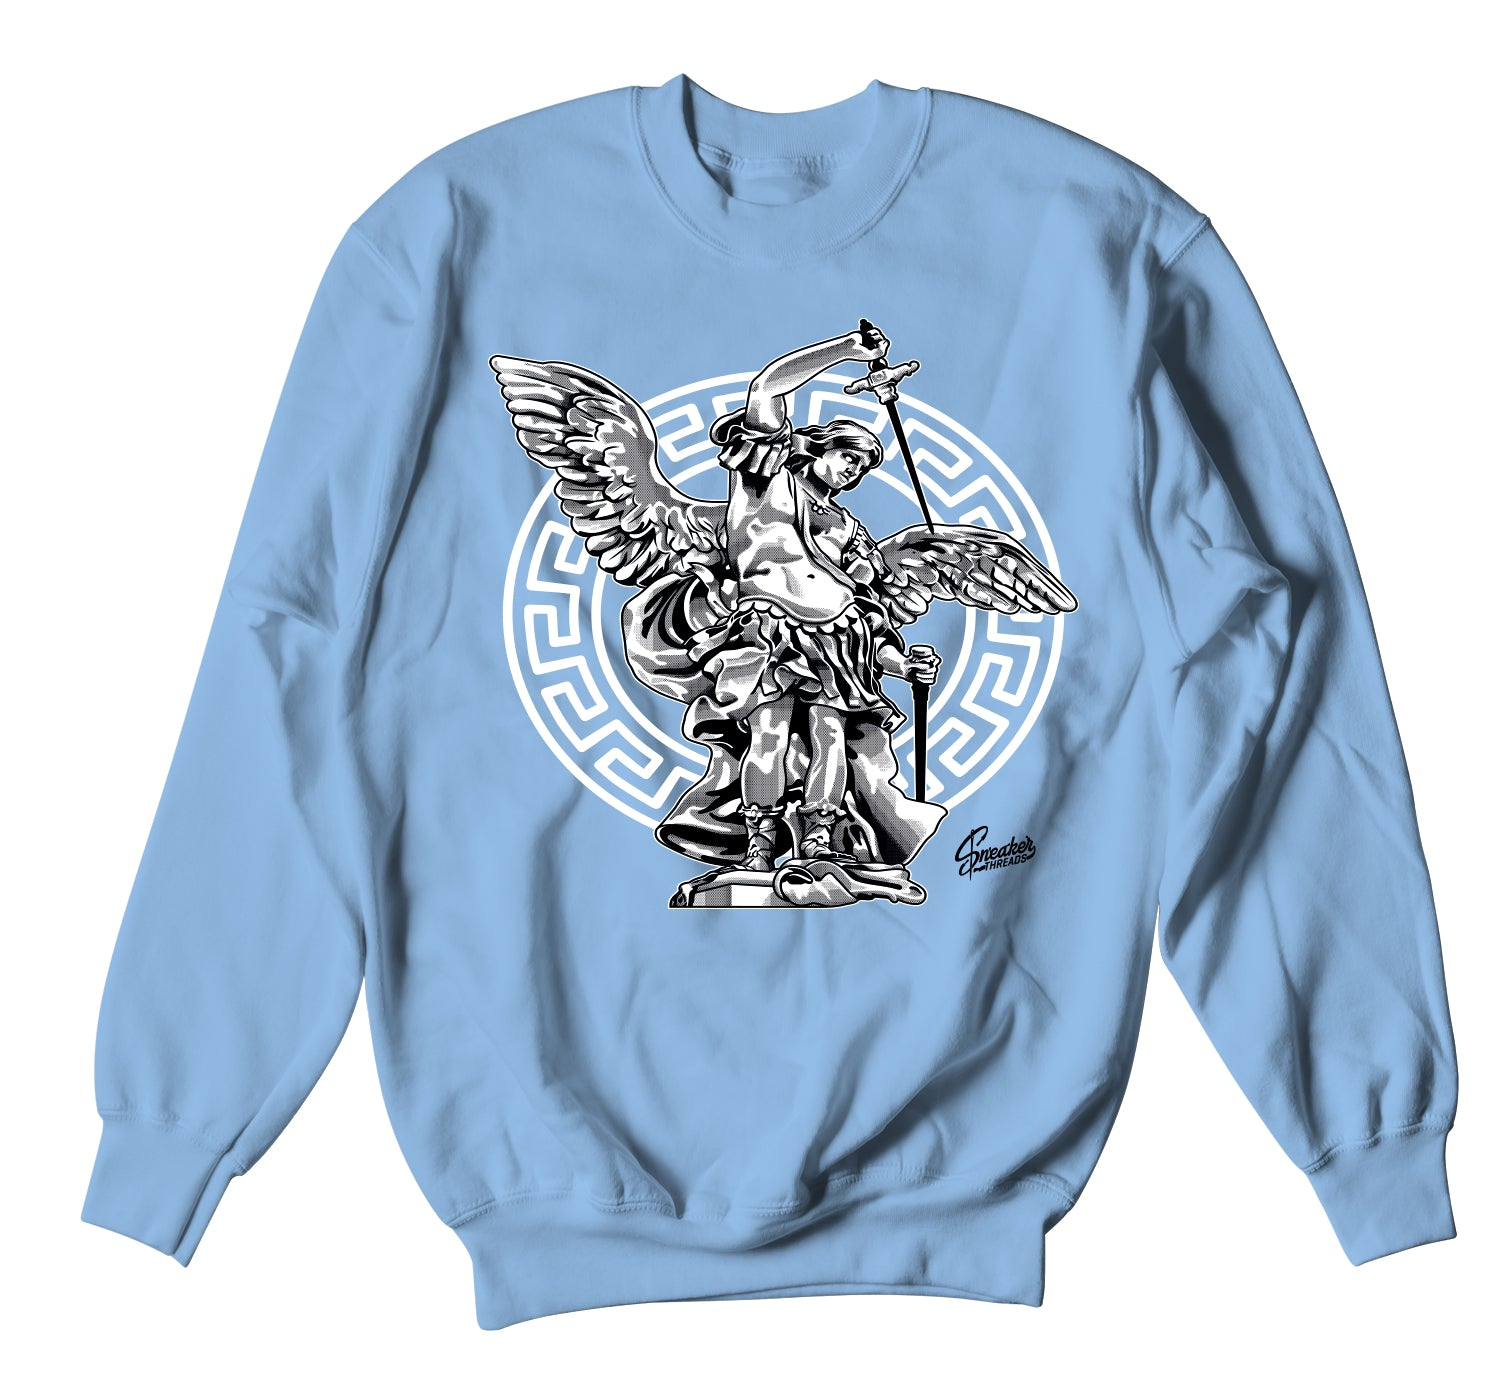 Jordan 1 University Blue ST Michael Sweater